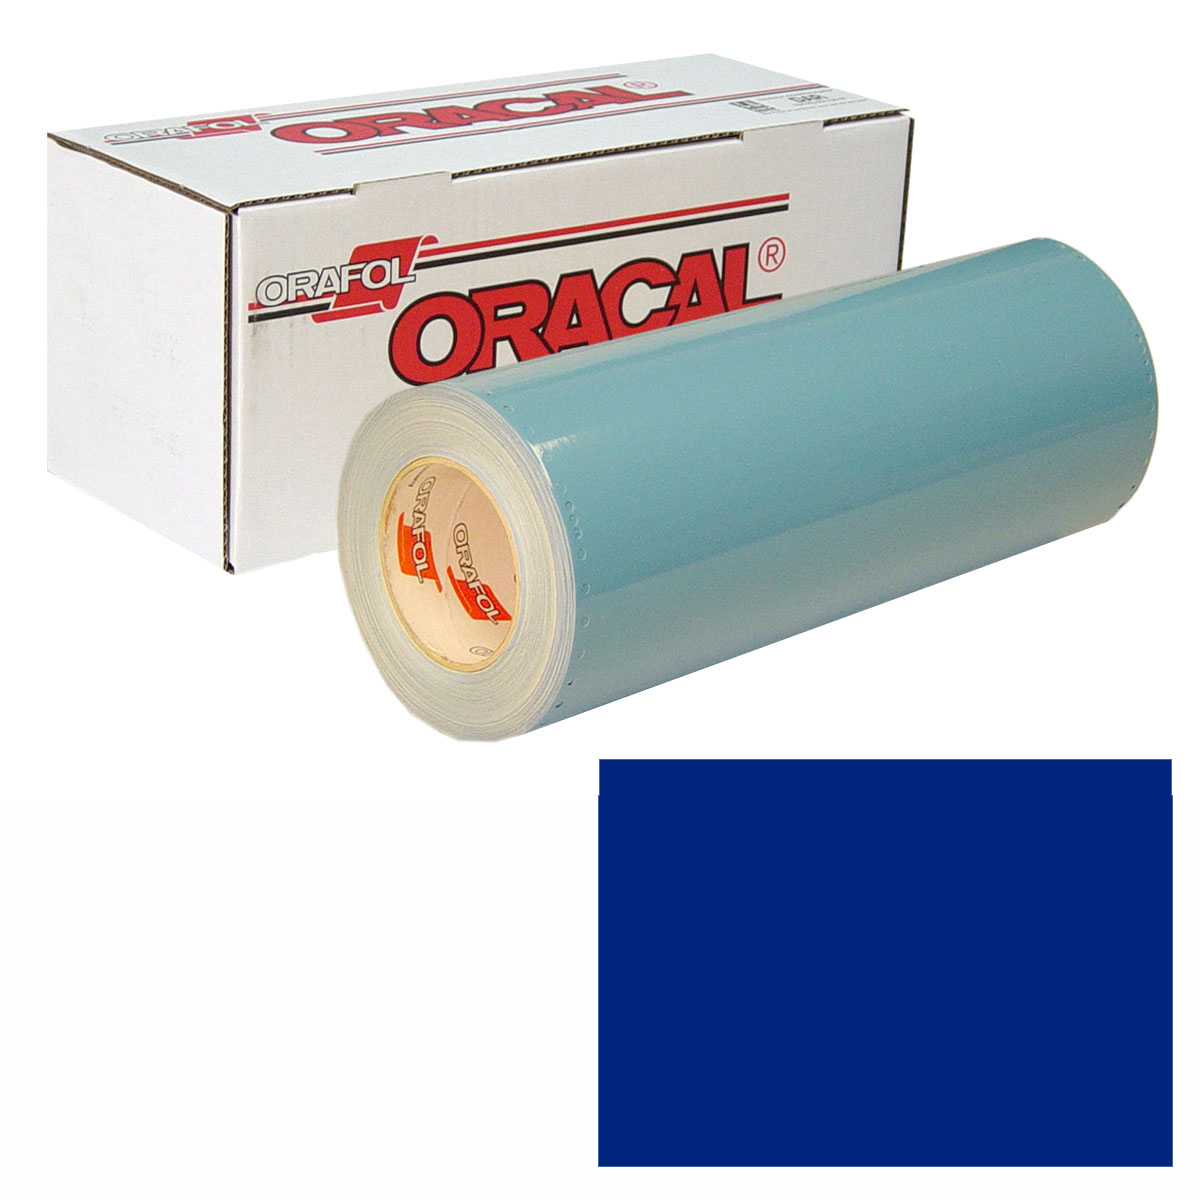 ORACAL 751 30in X 50yd 536 Middle Blue